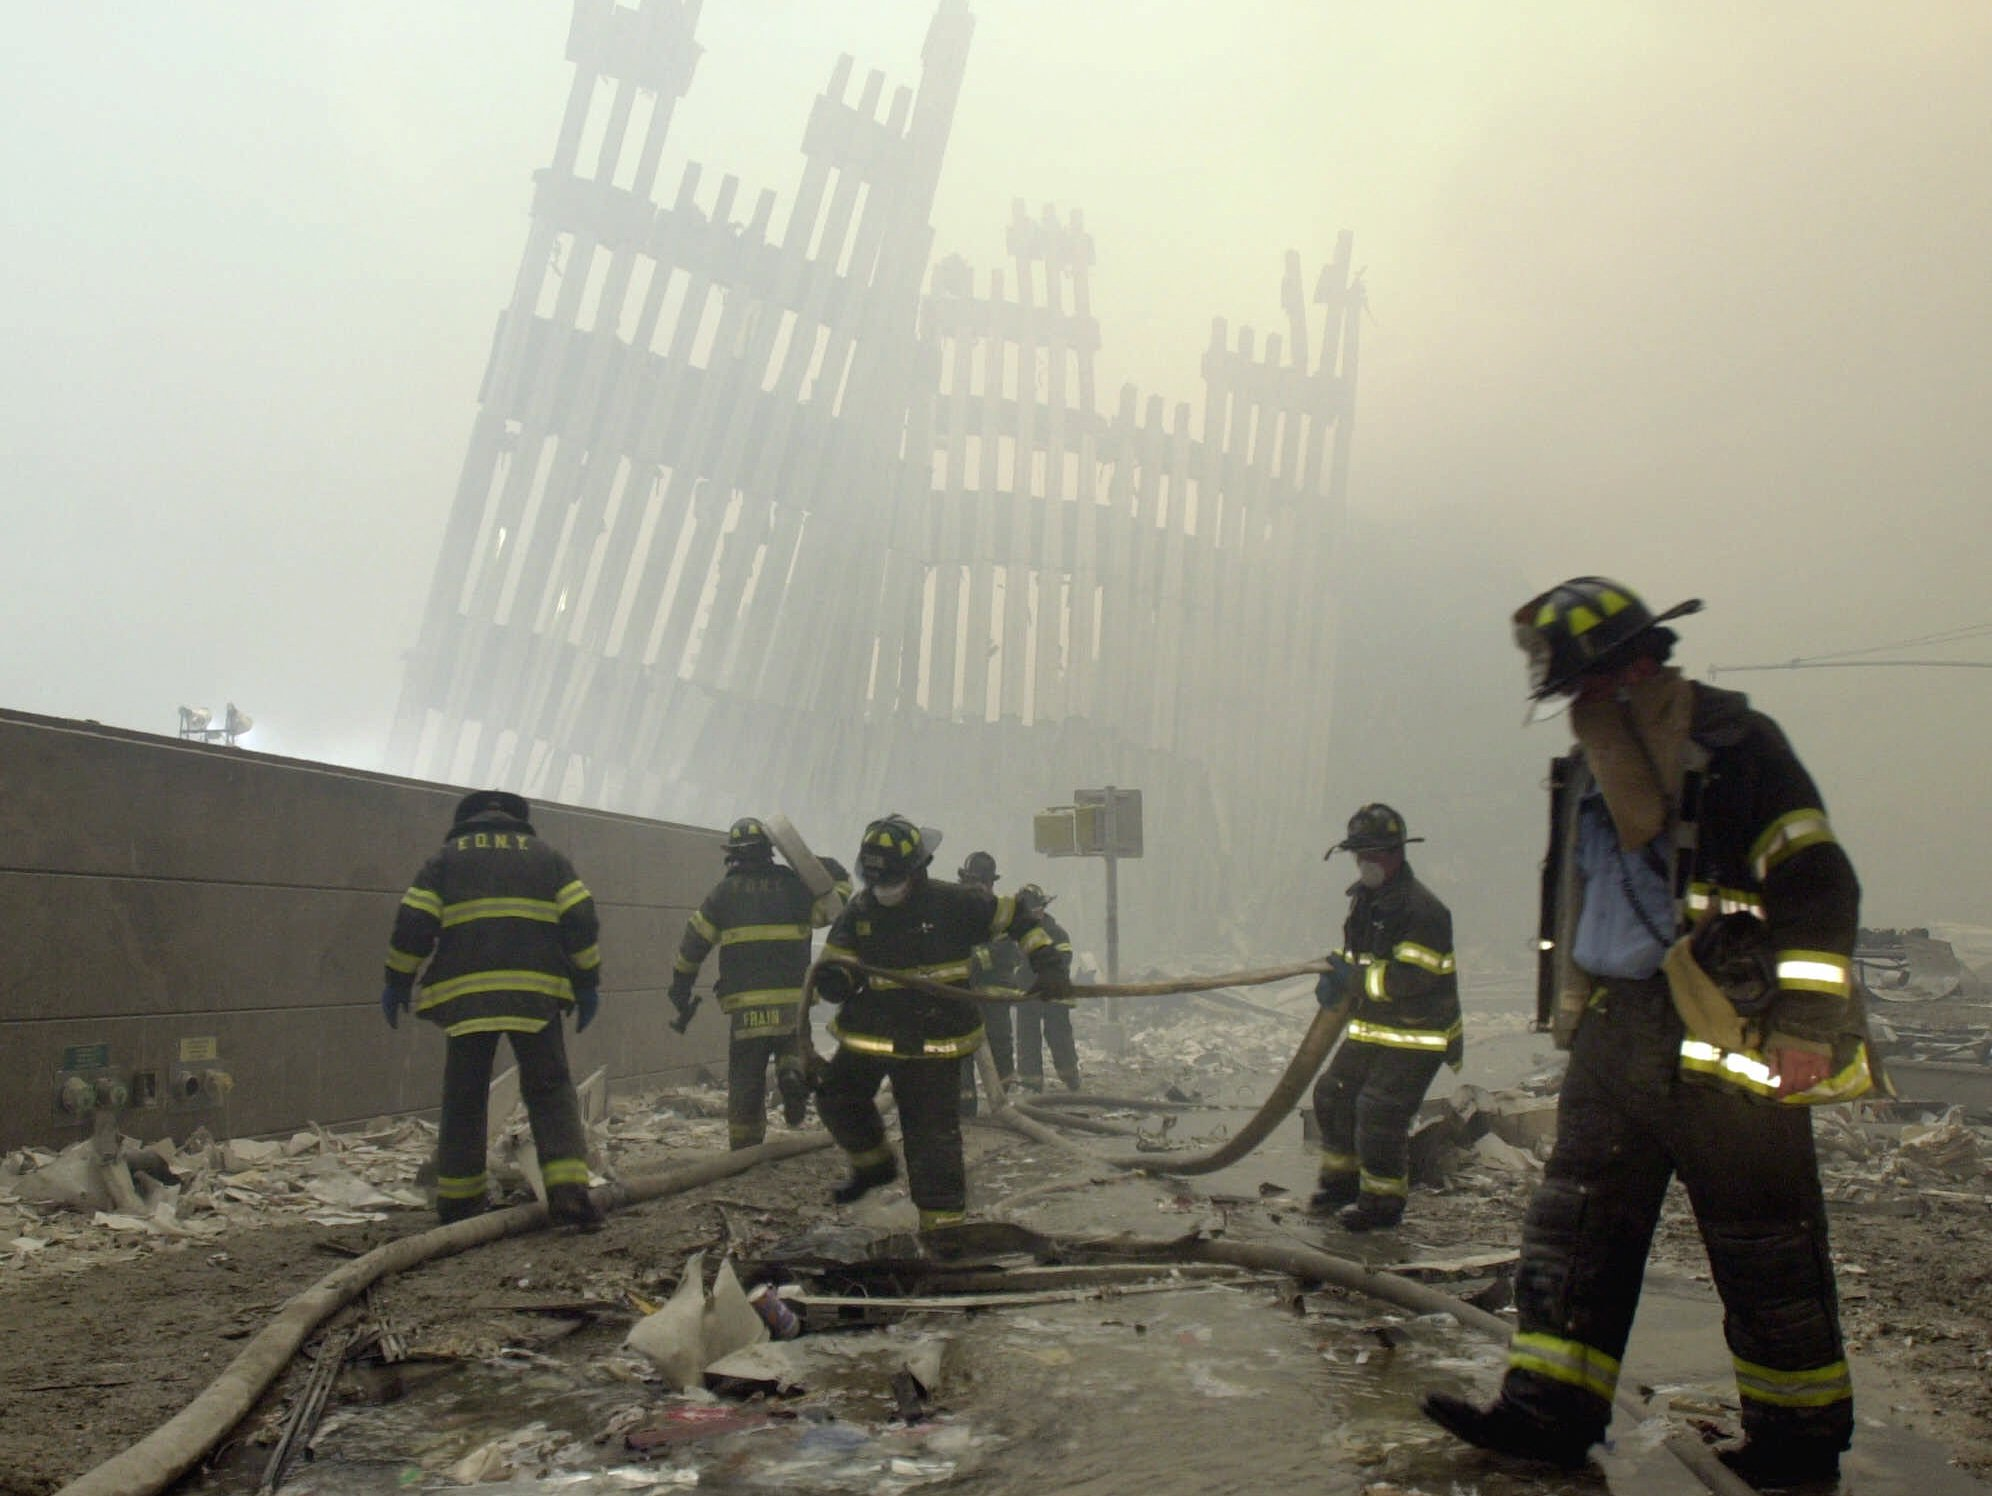 With the skeleton of the World Trade Center twin towers in the background, New York City firefighters work amid debris on Cortlandt St. after Sept. 11, 2001.